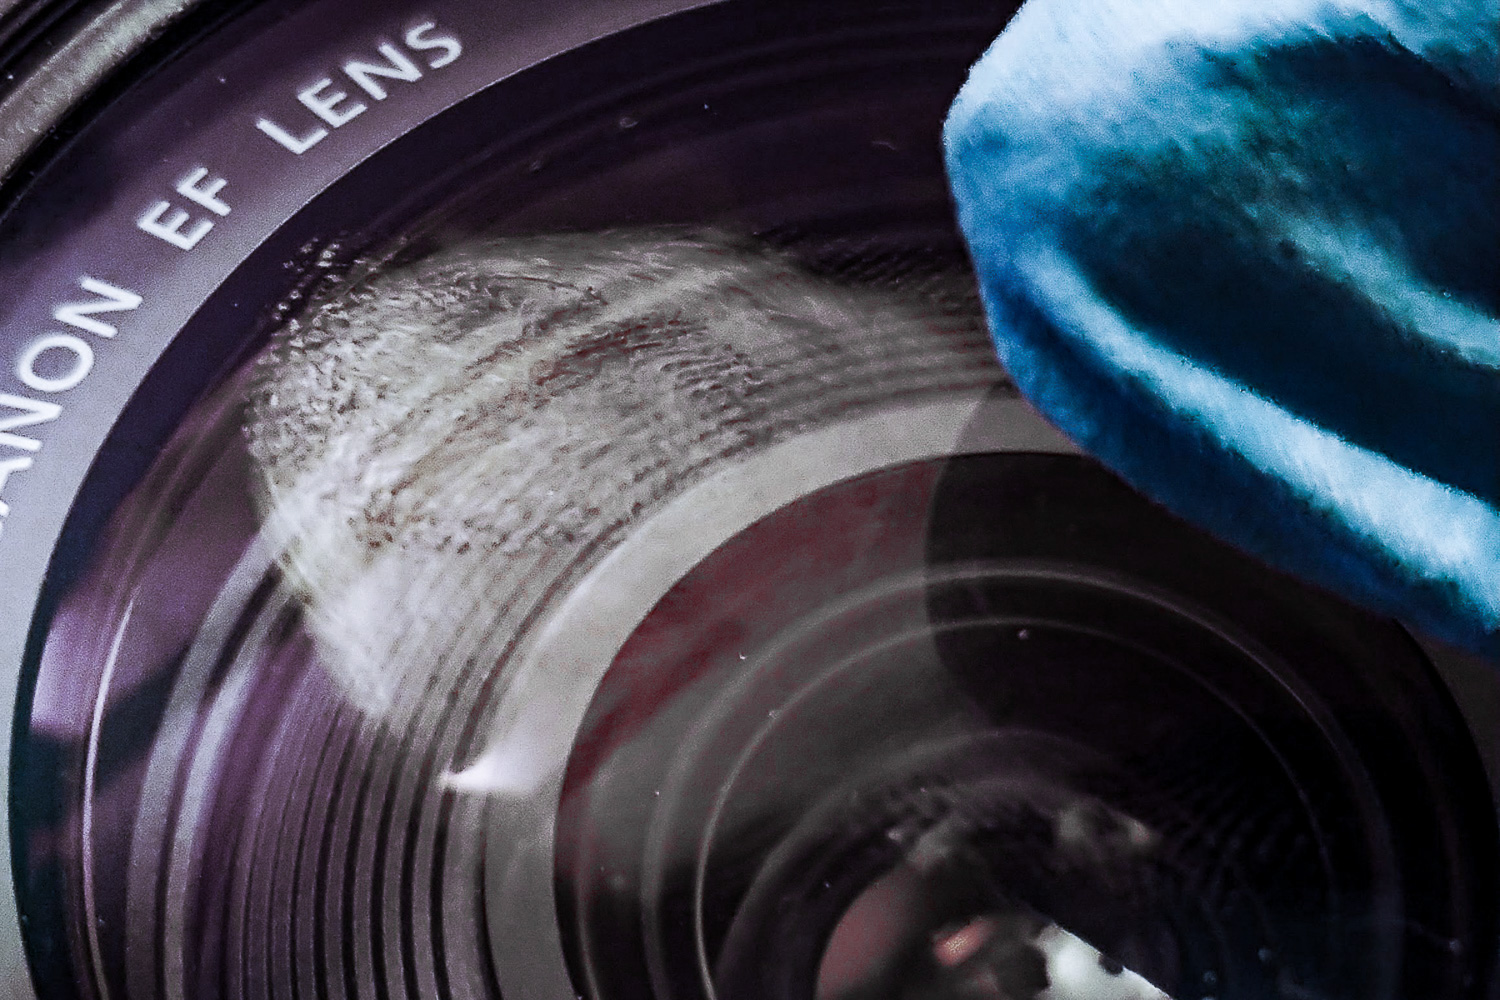 Photo mistakes - lens smudge